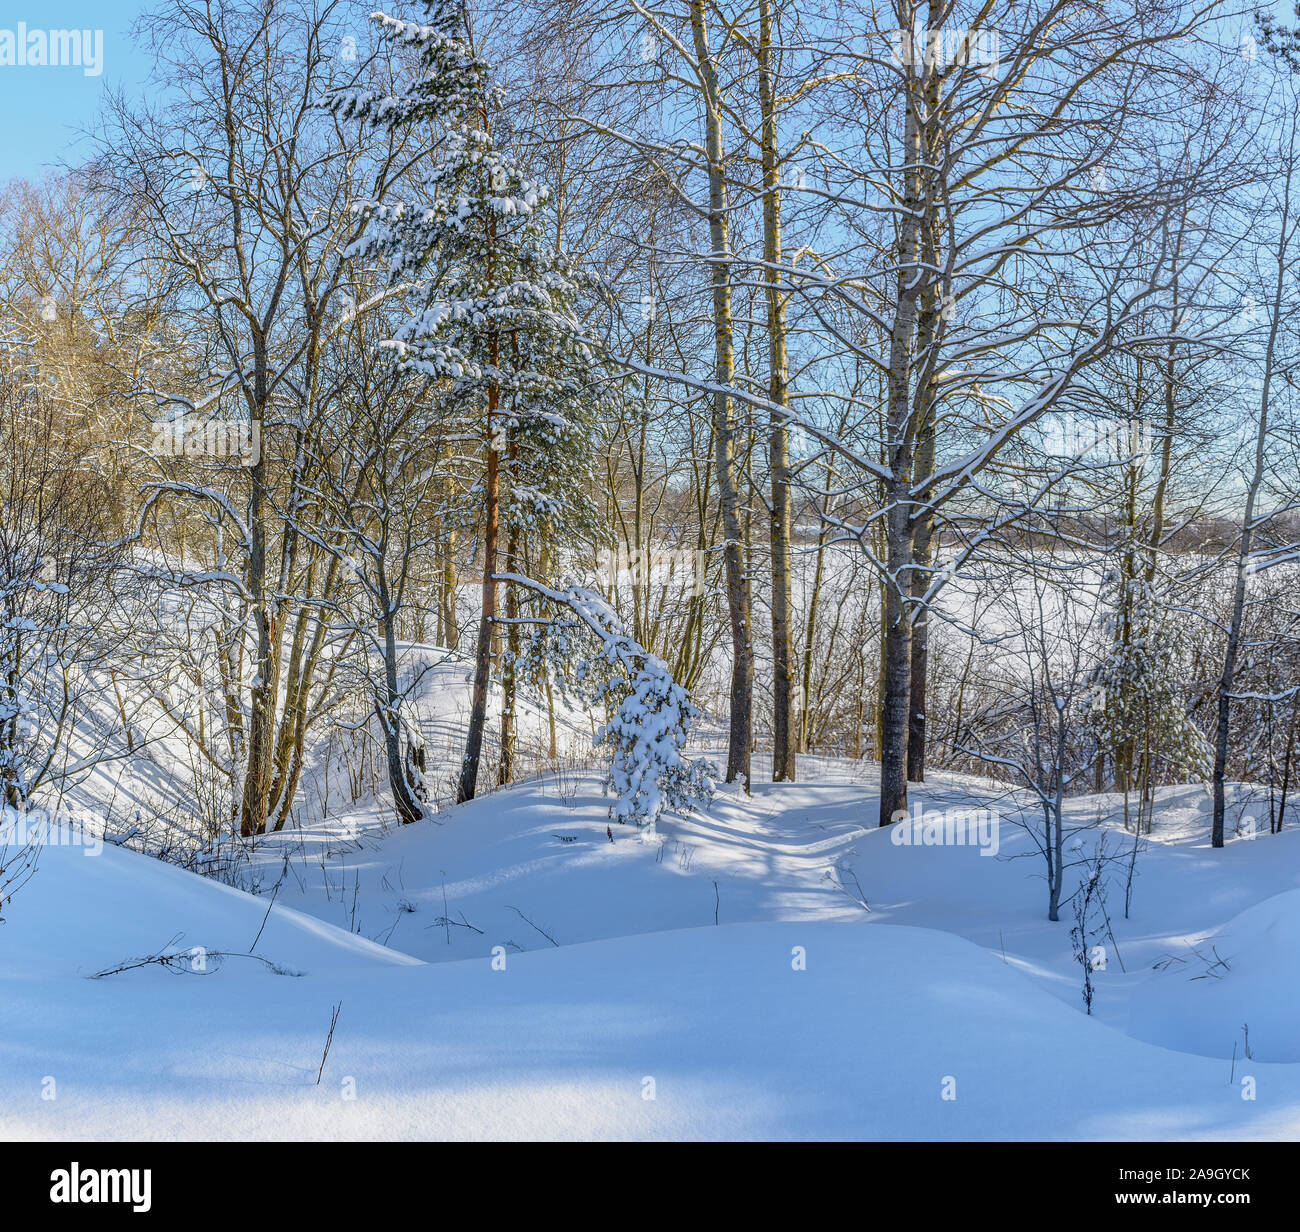 Winter Sunny day in the forest. A lot of snow on the ground and trees. Stock Photo